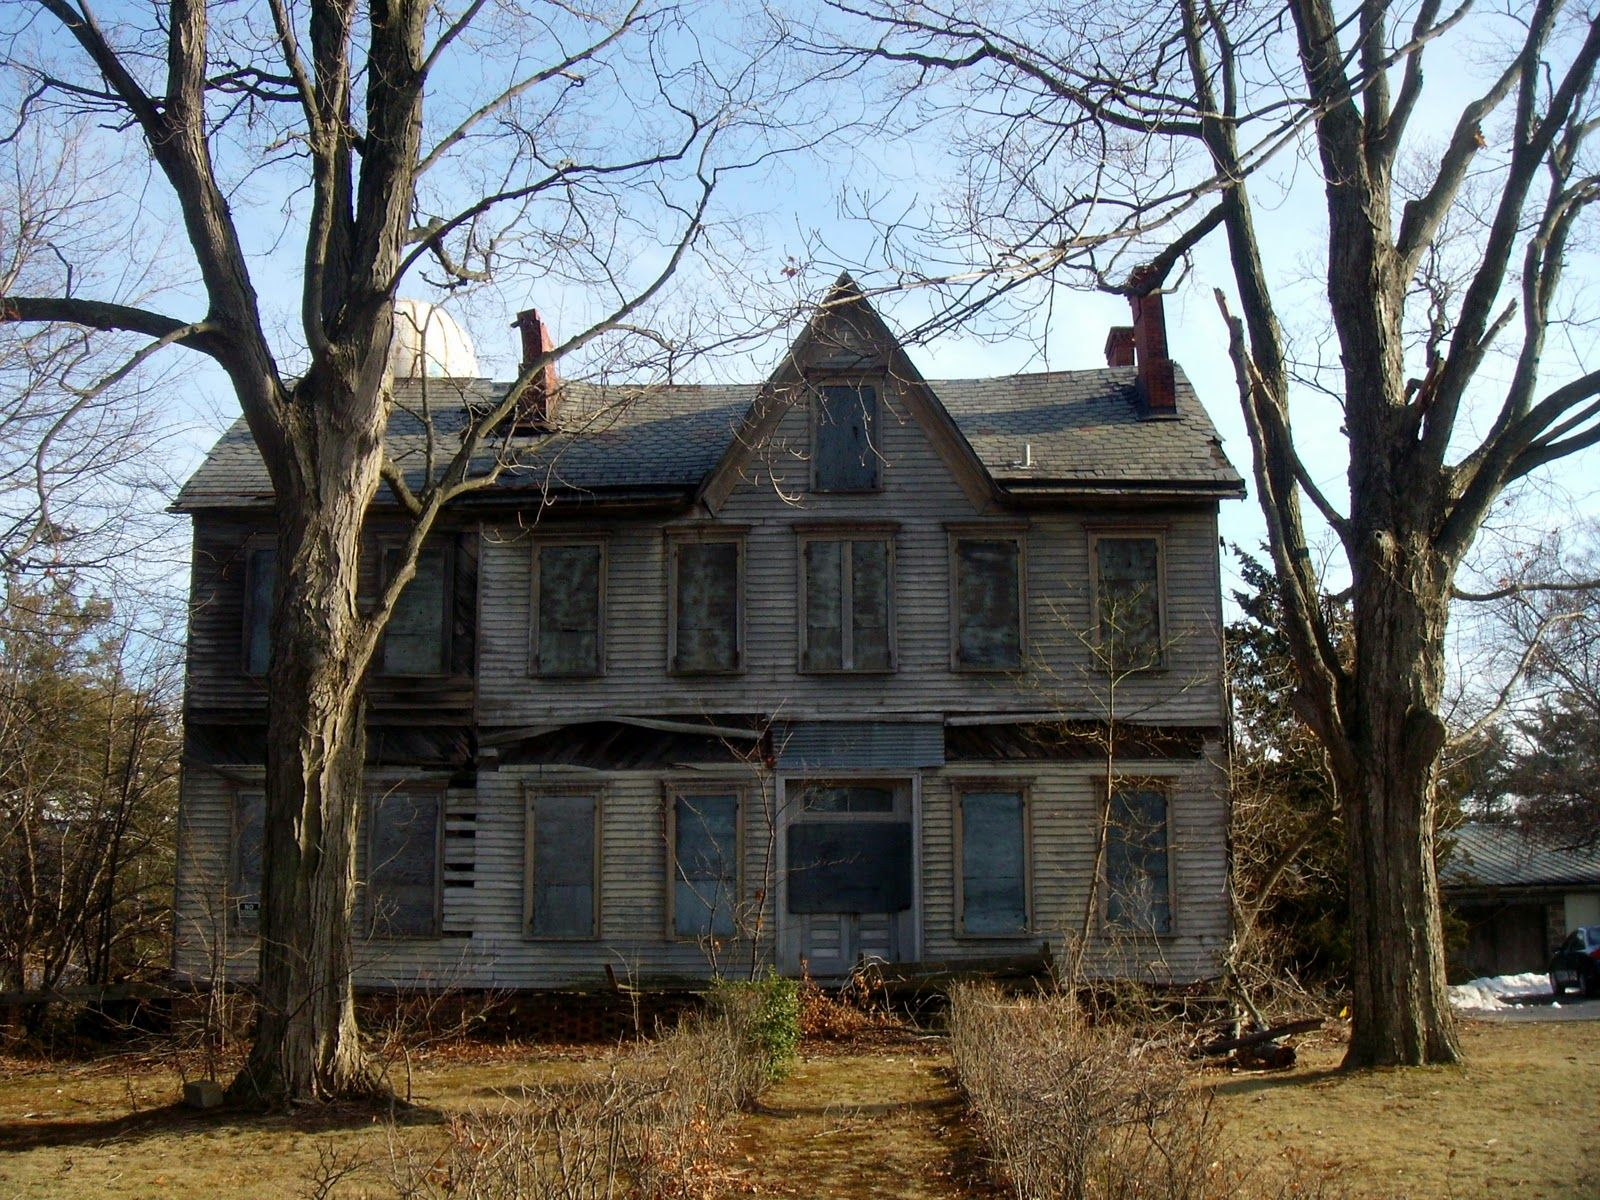 House Abandoned Mansions in illinois | Abandoned House on